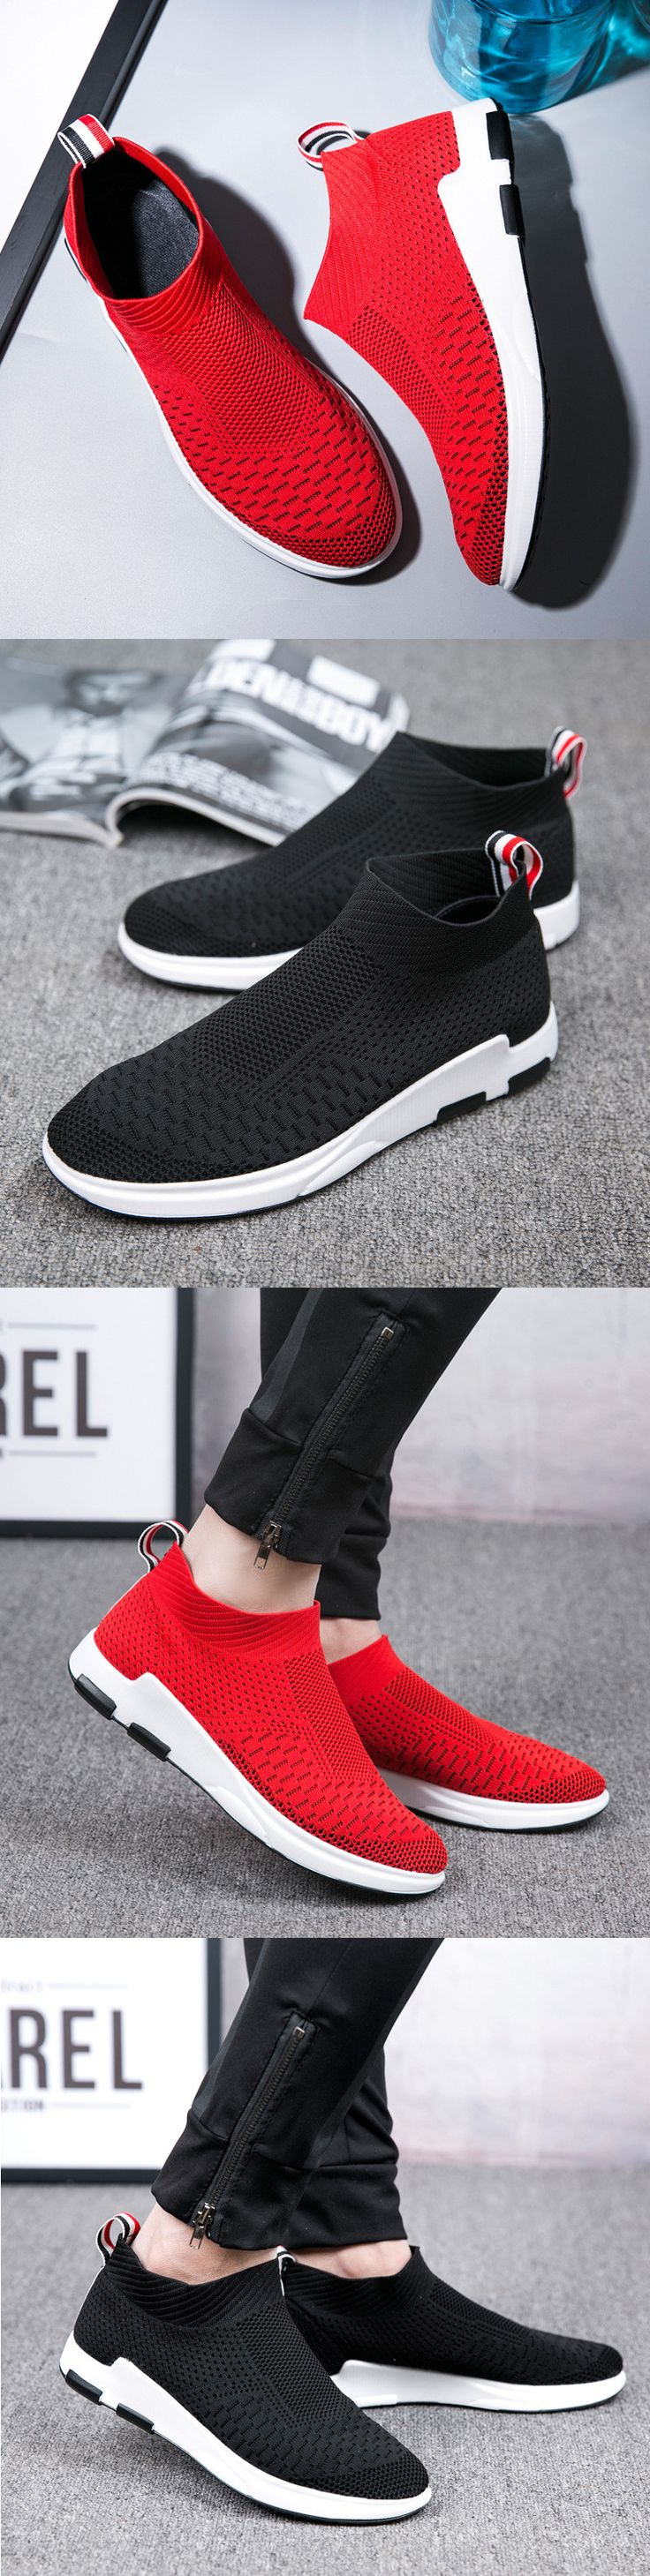 US$34.58 Men Flyknit Mesh Fabric Breathable Sock Trainers Sport Casual Sneakers